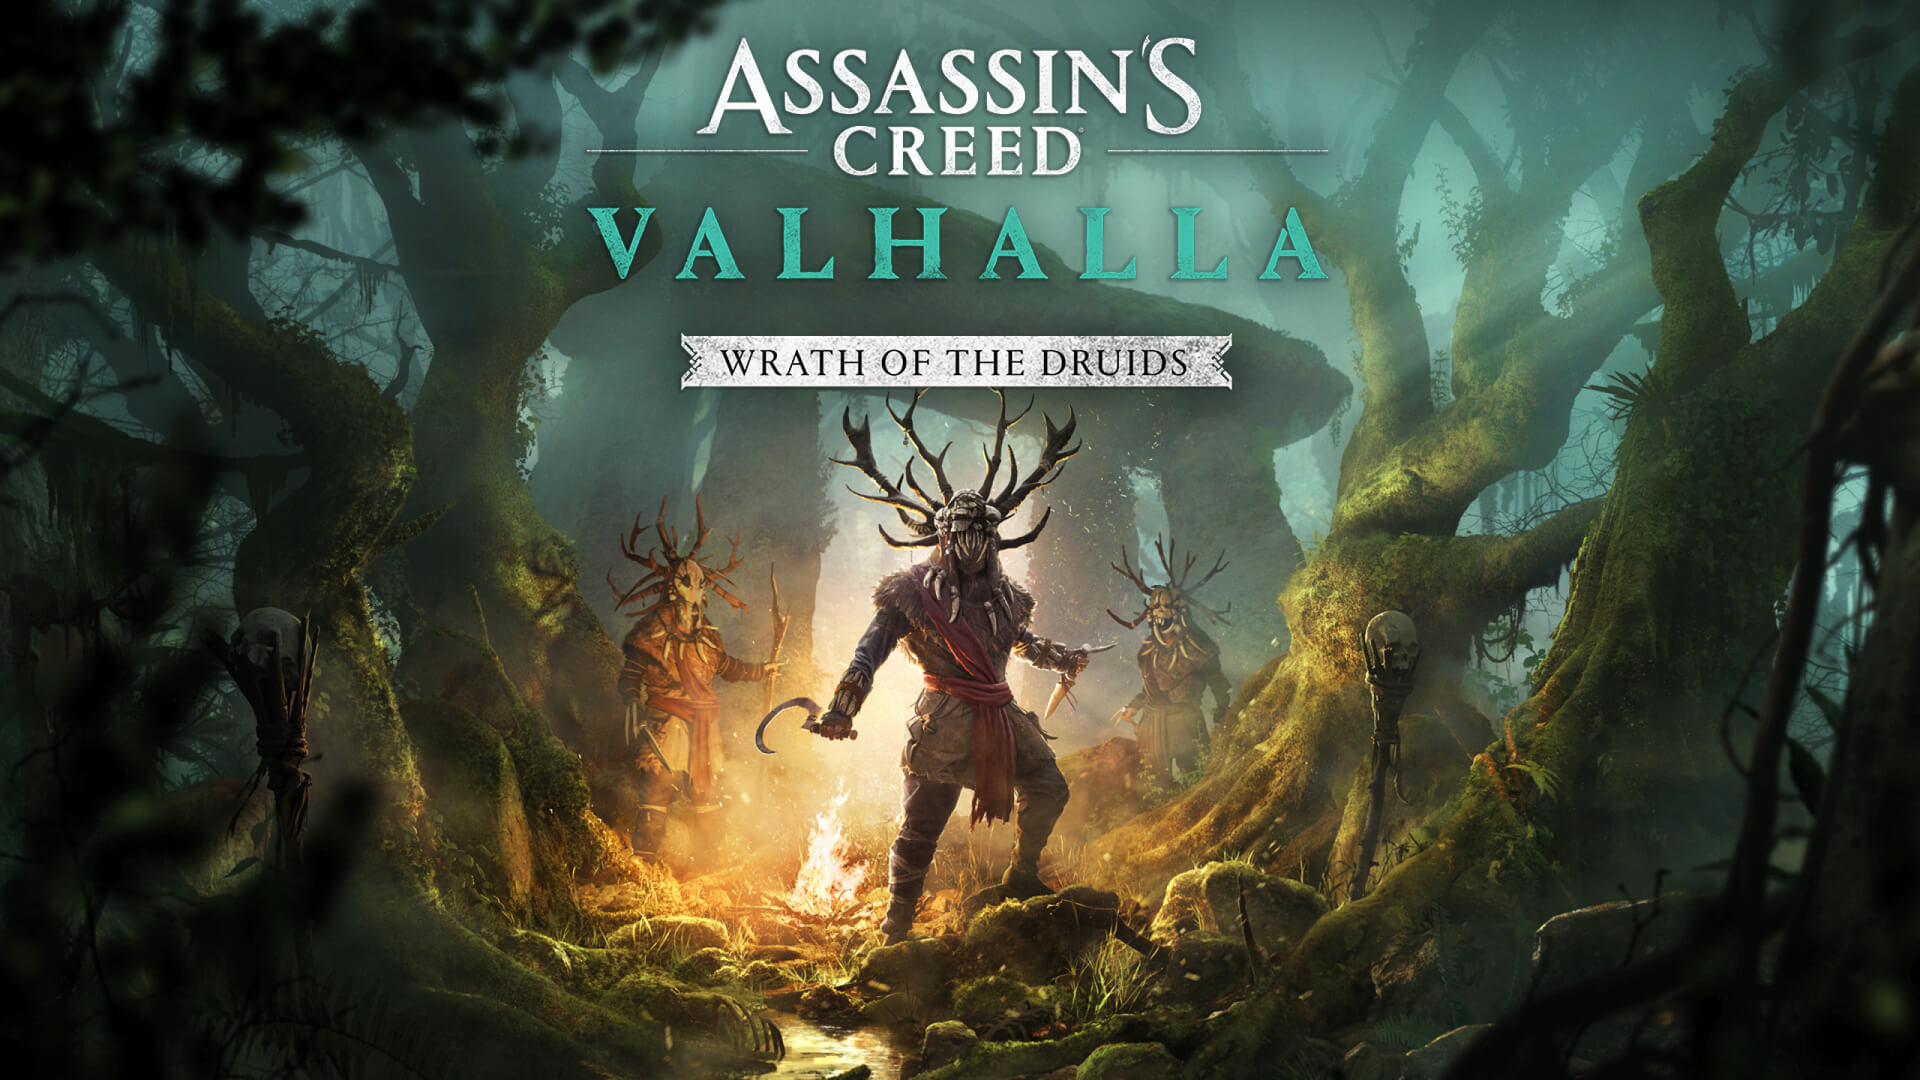 Assassin's Creed Valhalla Wrath of the Druids Releases April 29